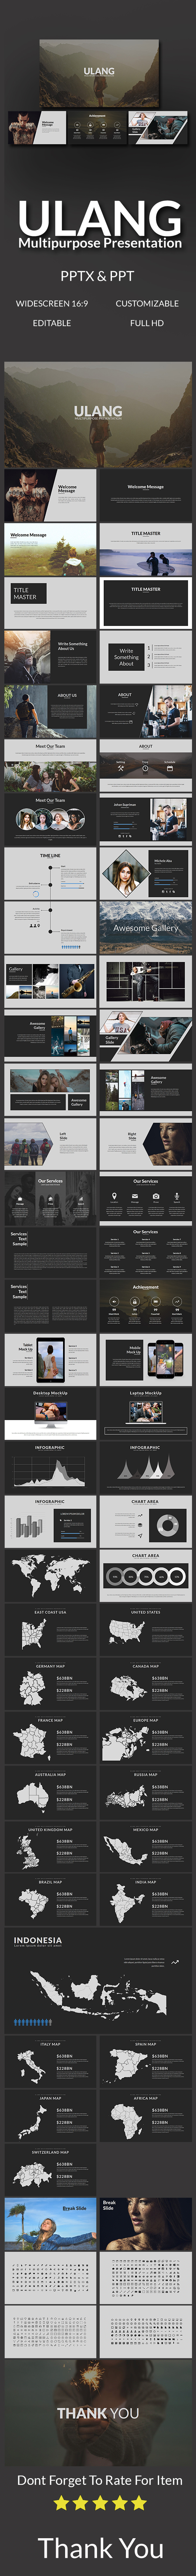 Ulang Multipurpose Template - PowerPoint Templates Presentation Templates